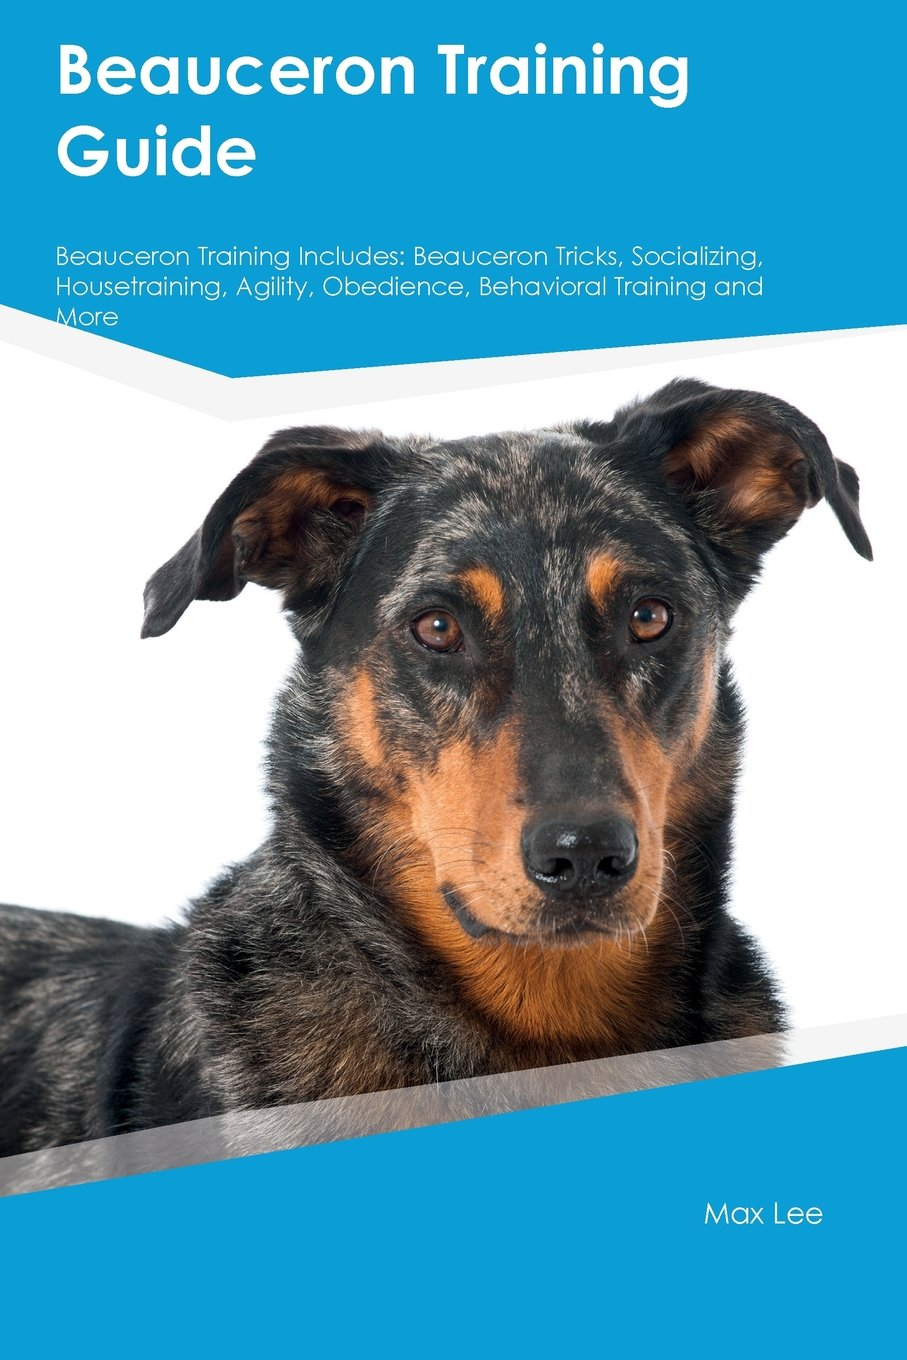 Beauceron Training Guide Beauceron Training Includes: Beauceron Tricks, Socializing, Housetraining, Agility, Obedience…